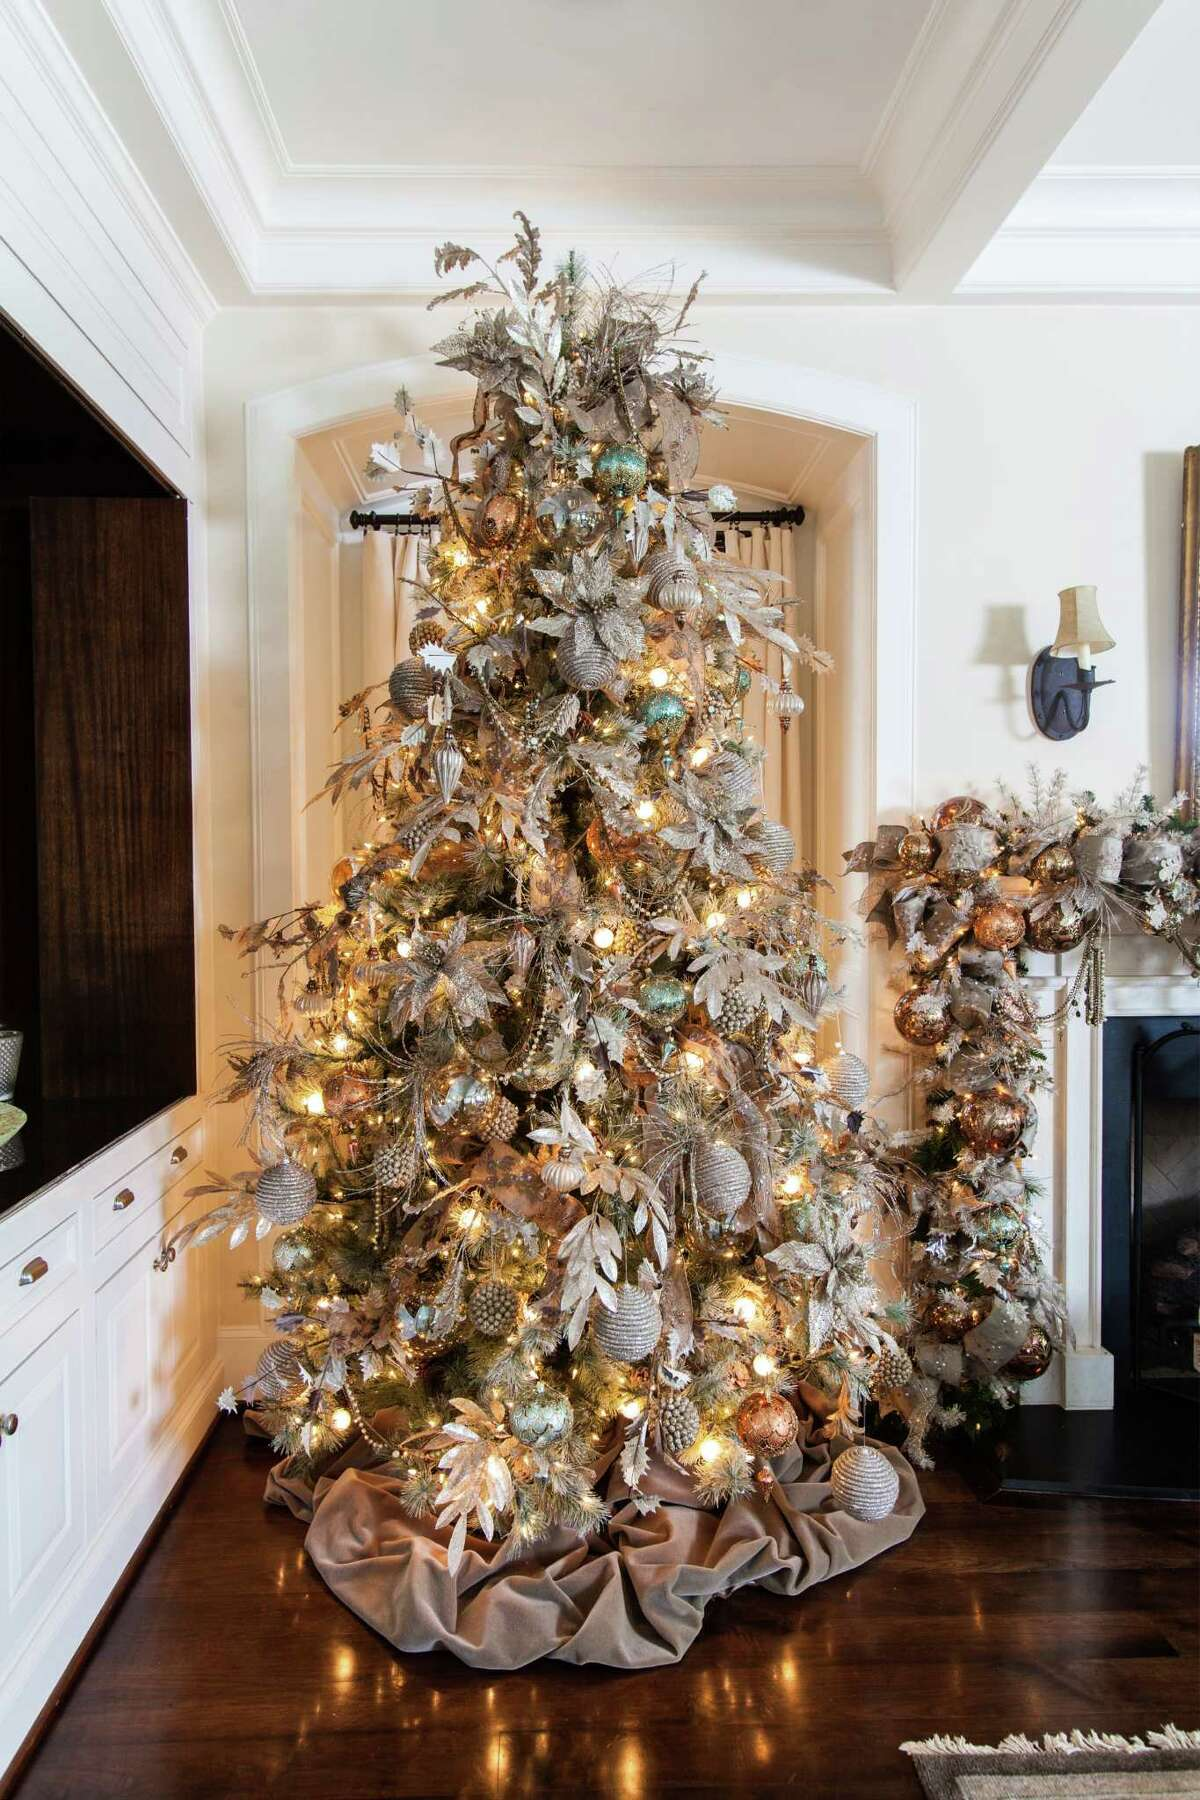 In this West University home's family room, Gust decorated the tree with blush tones, bronzes and soft greens.